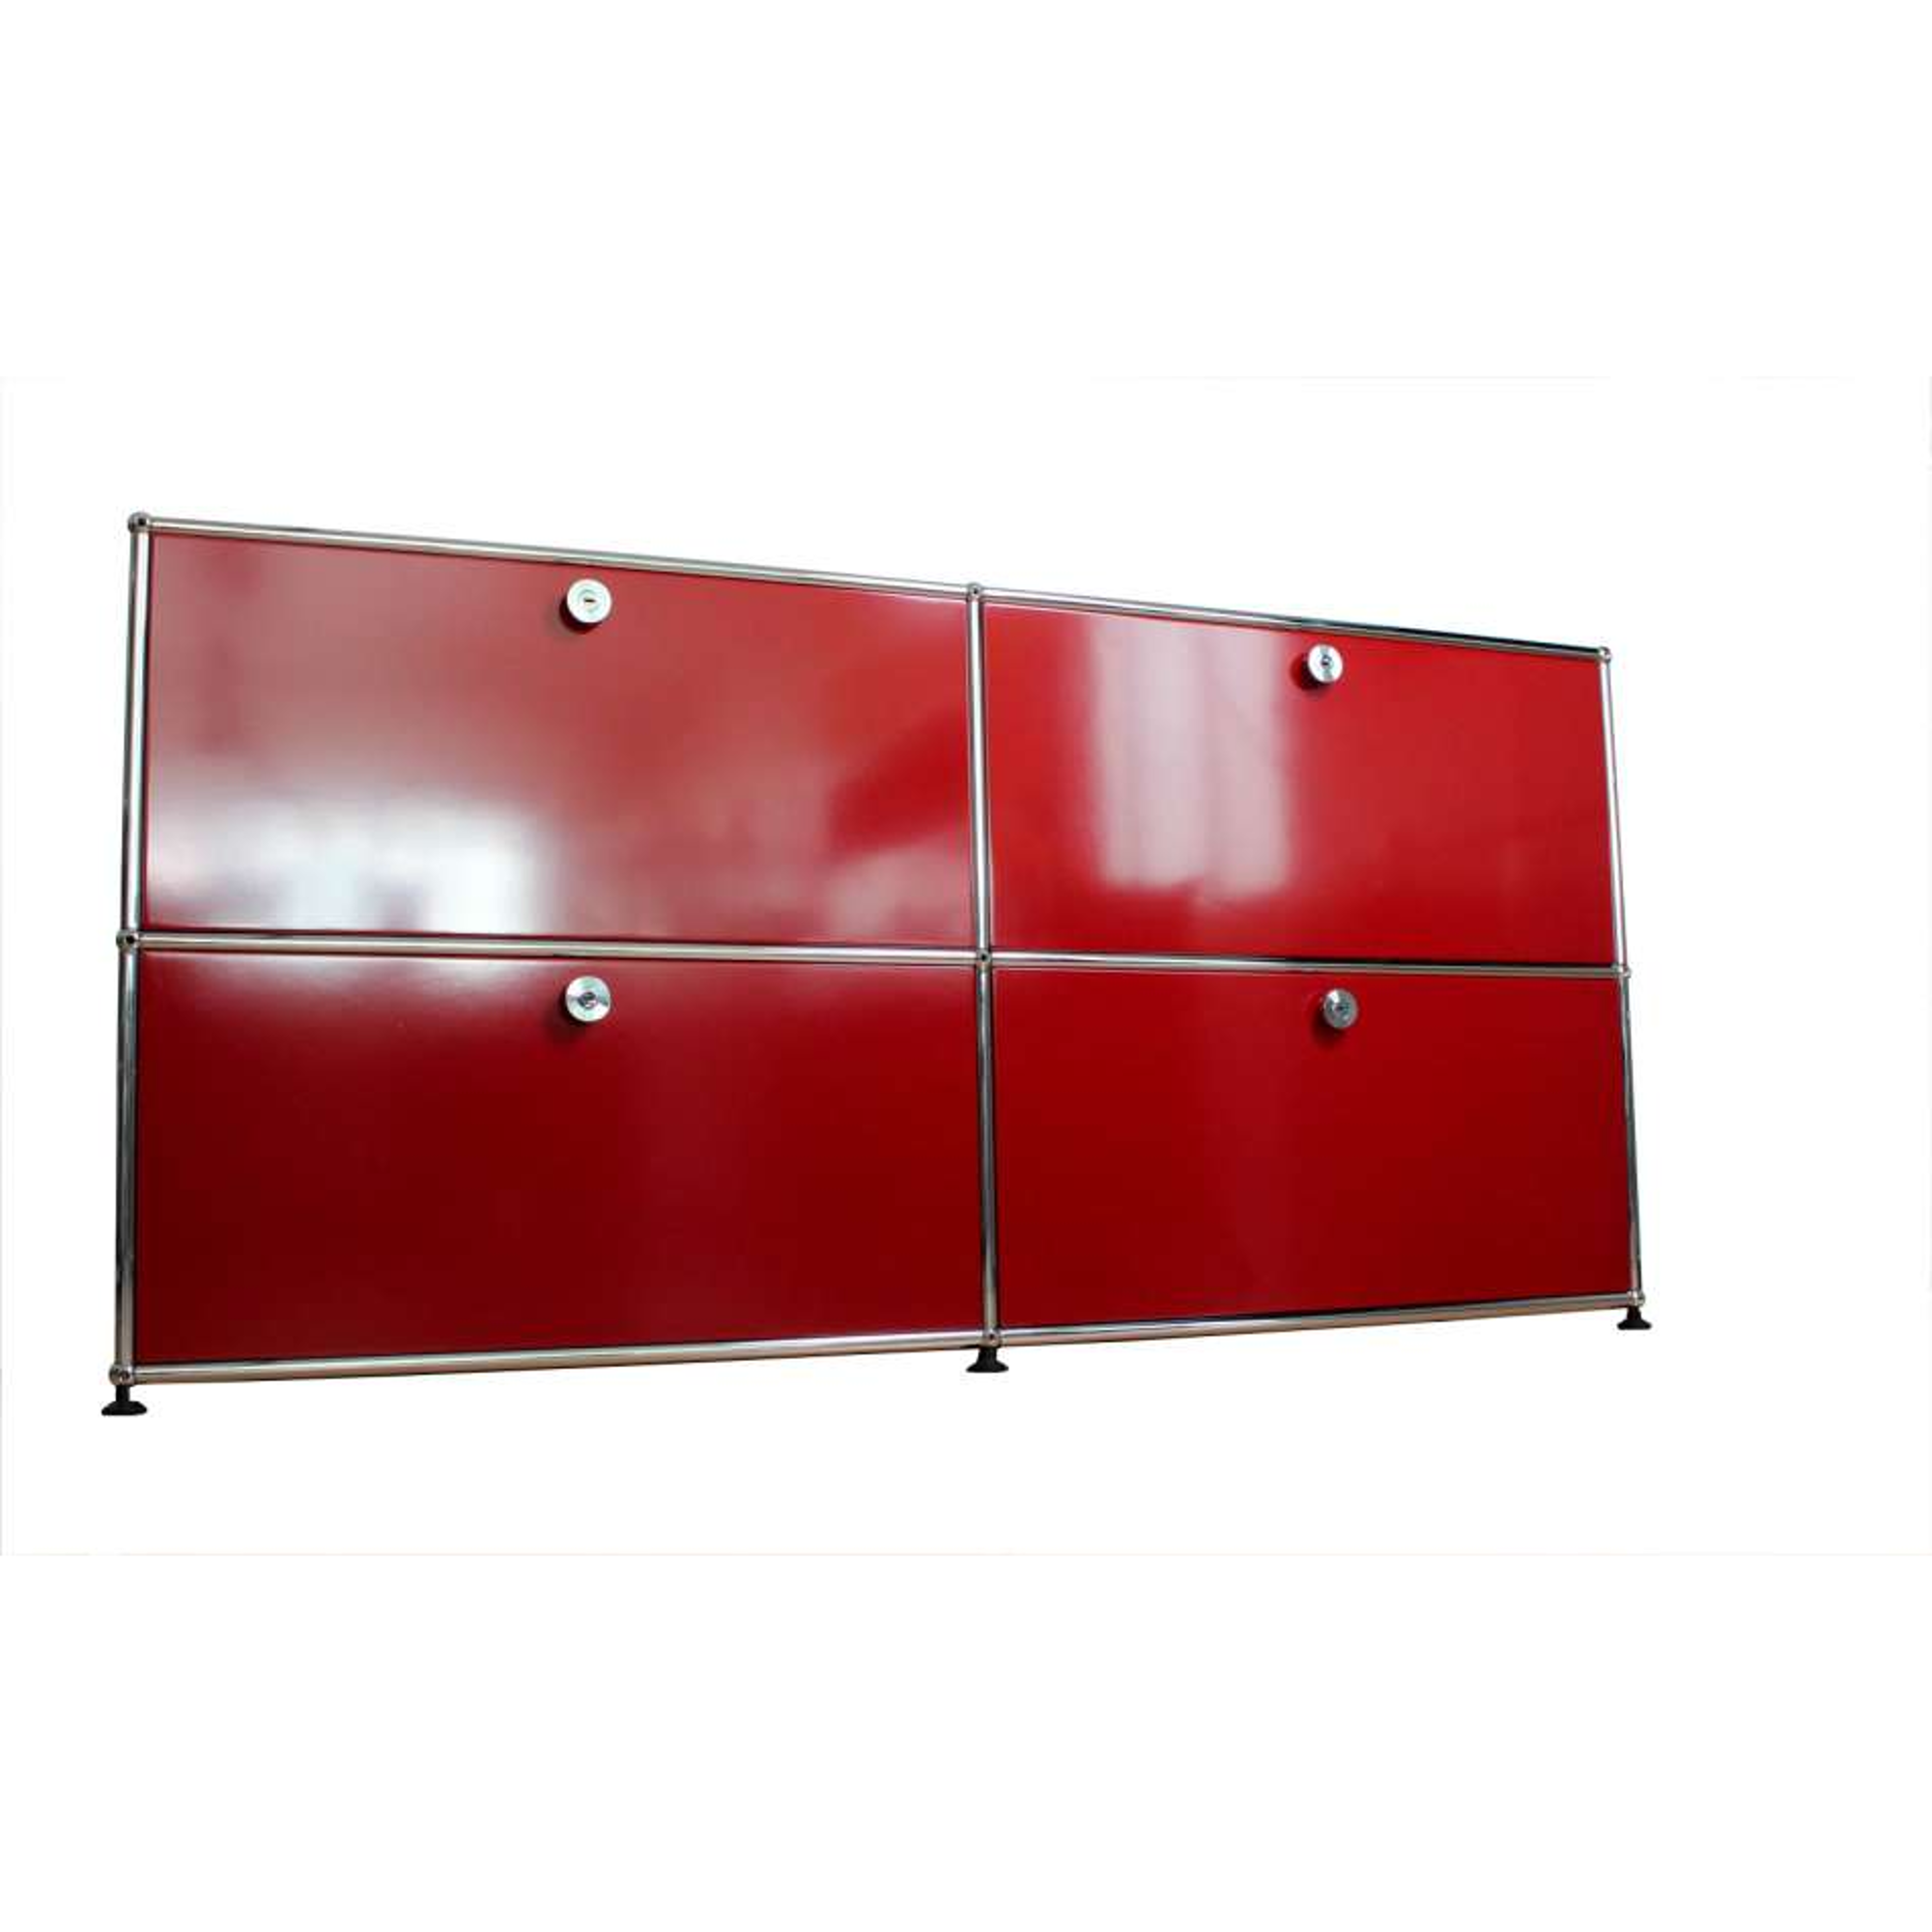 usm haller sideboard 4 klappen rot ebay. Black Bedroom Furniture Sets. Home Design Ideas